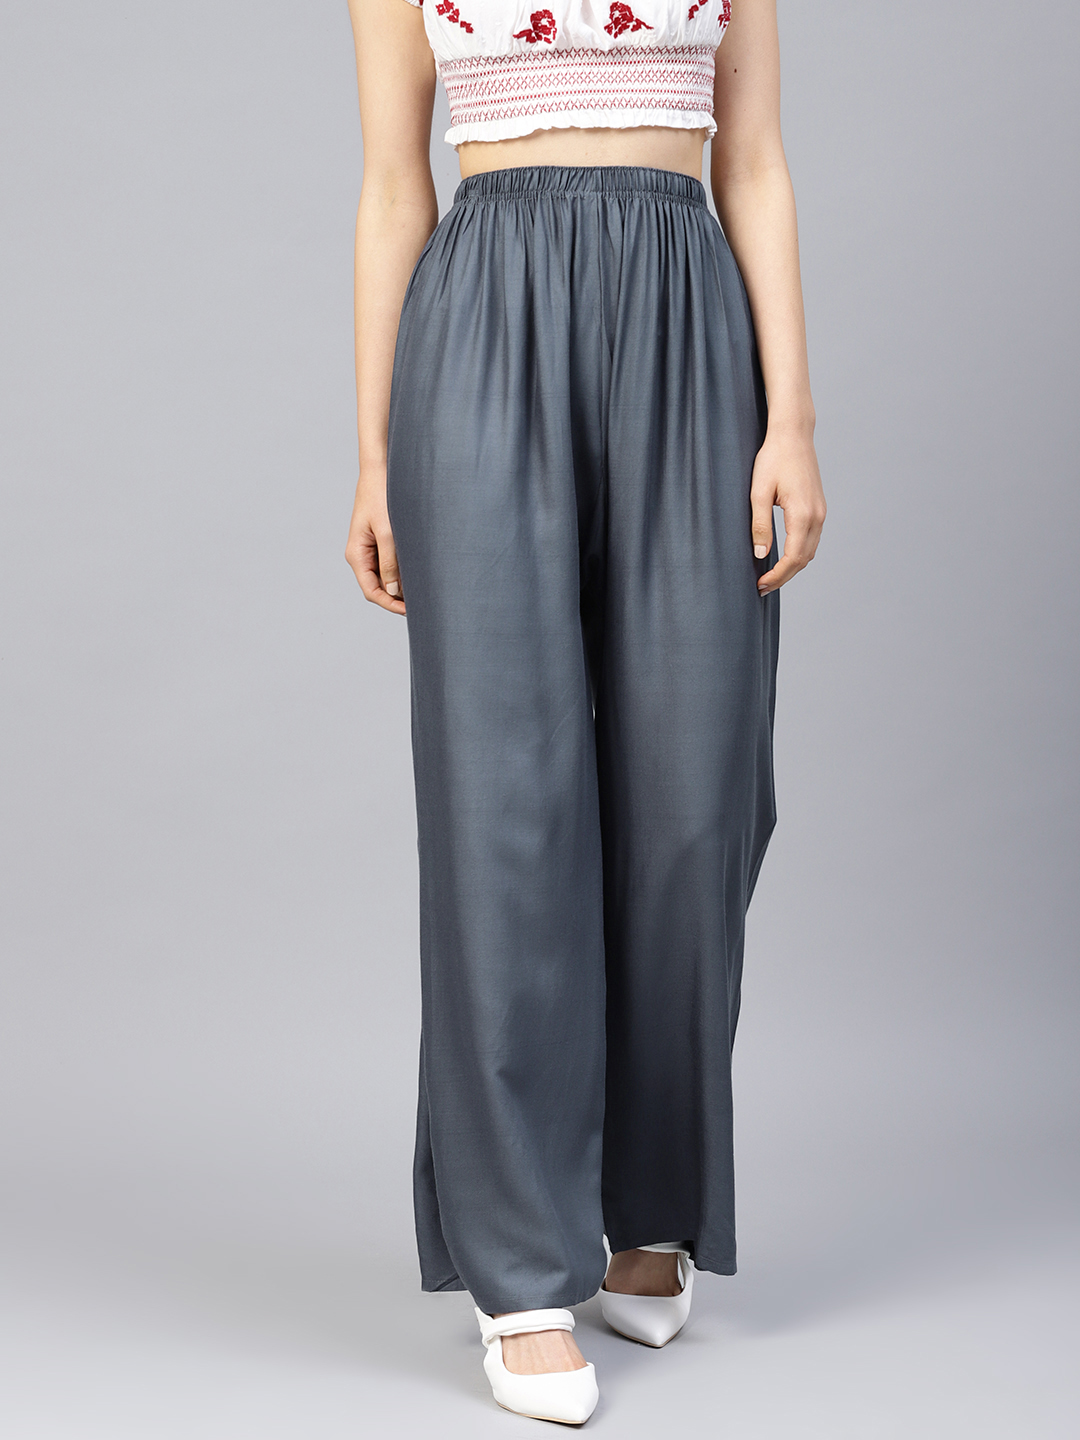 Jompers | Jompers Women Grey Solid Straight Palazzos